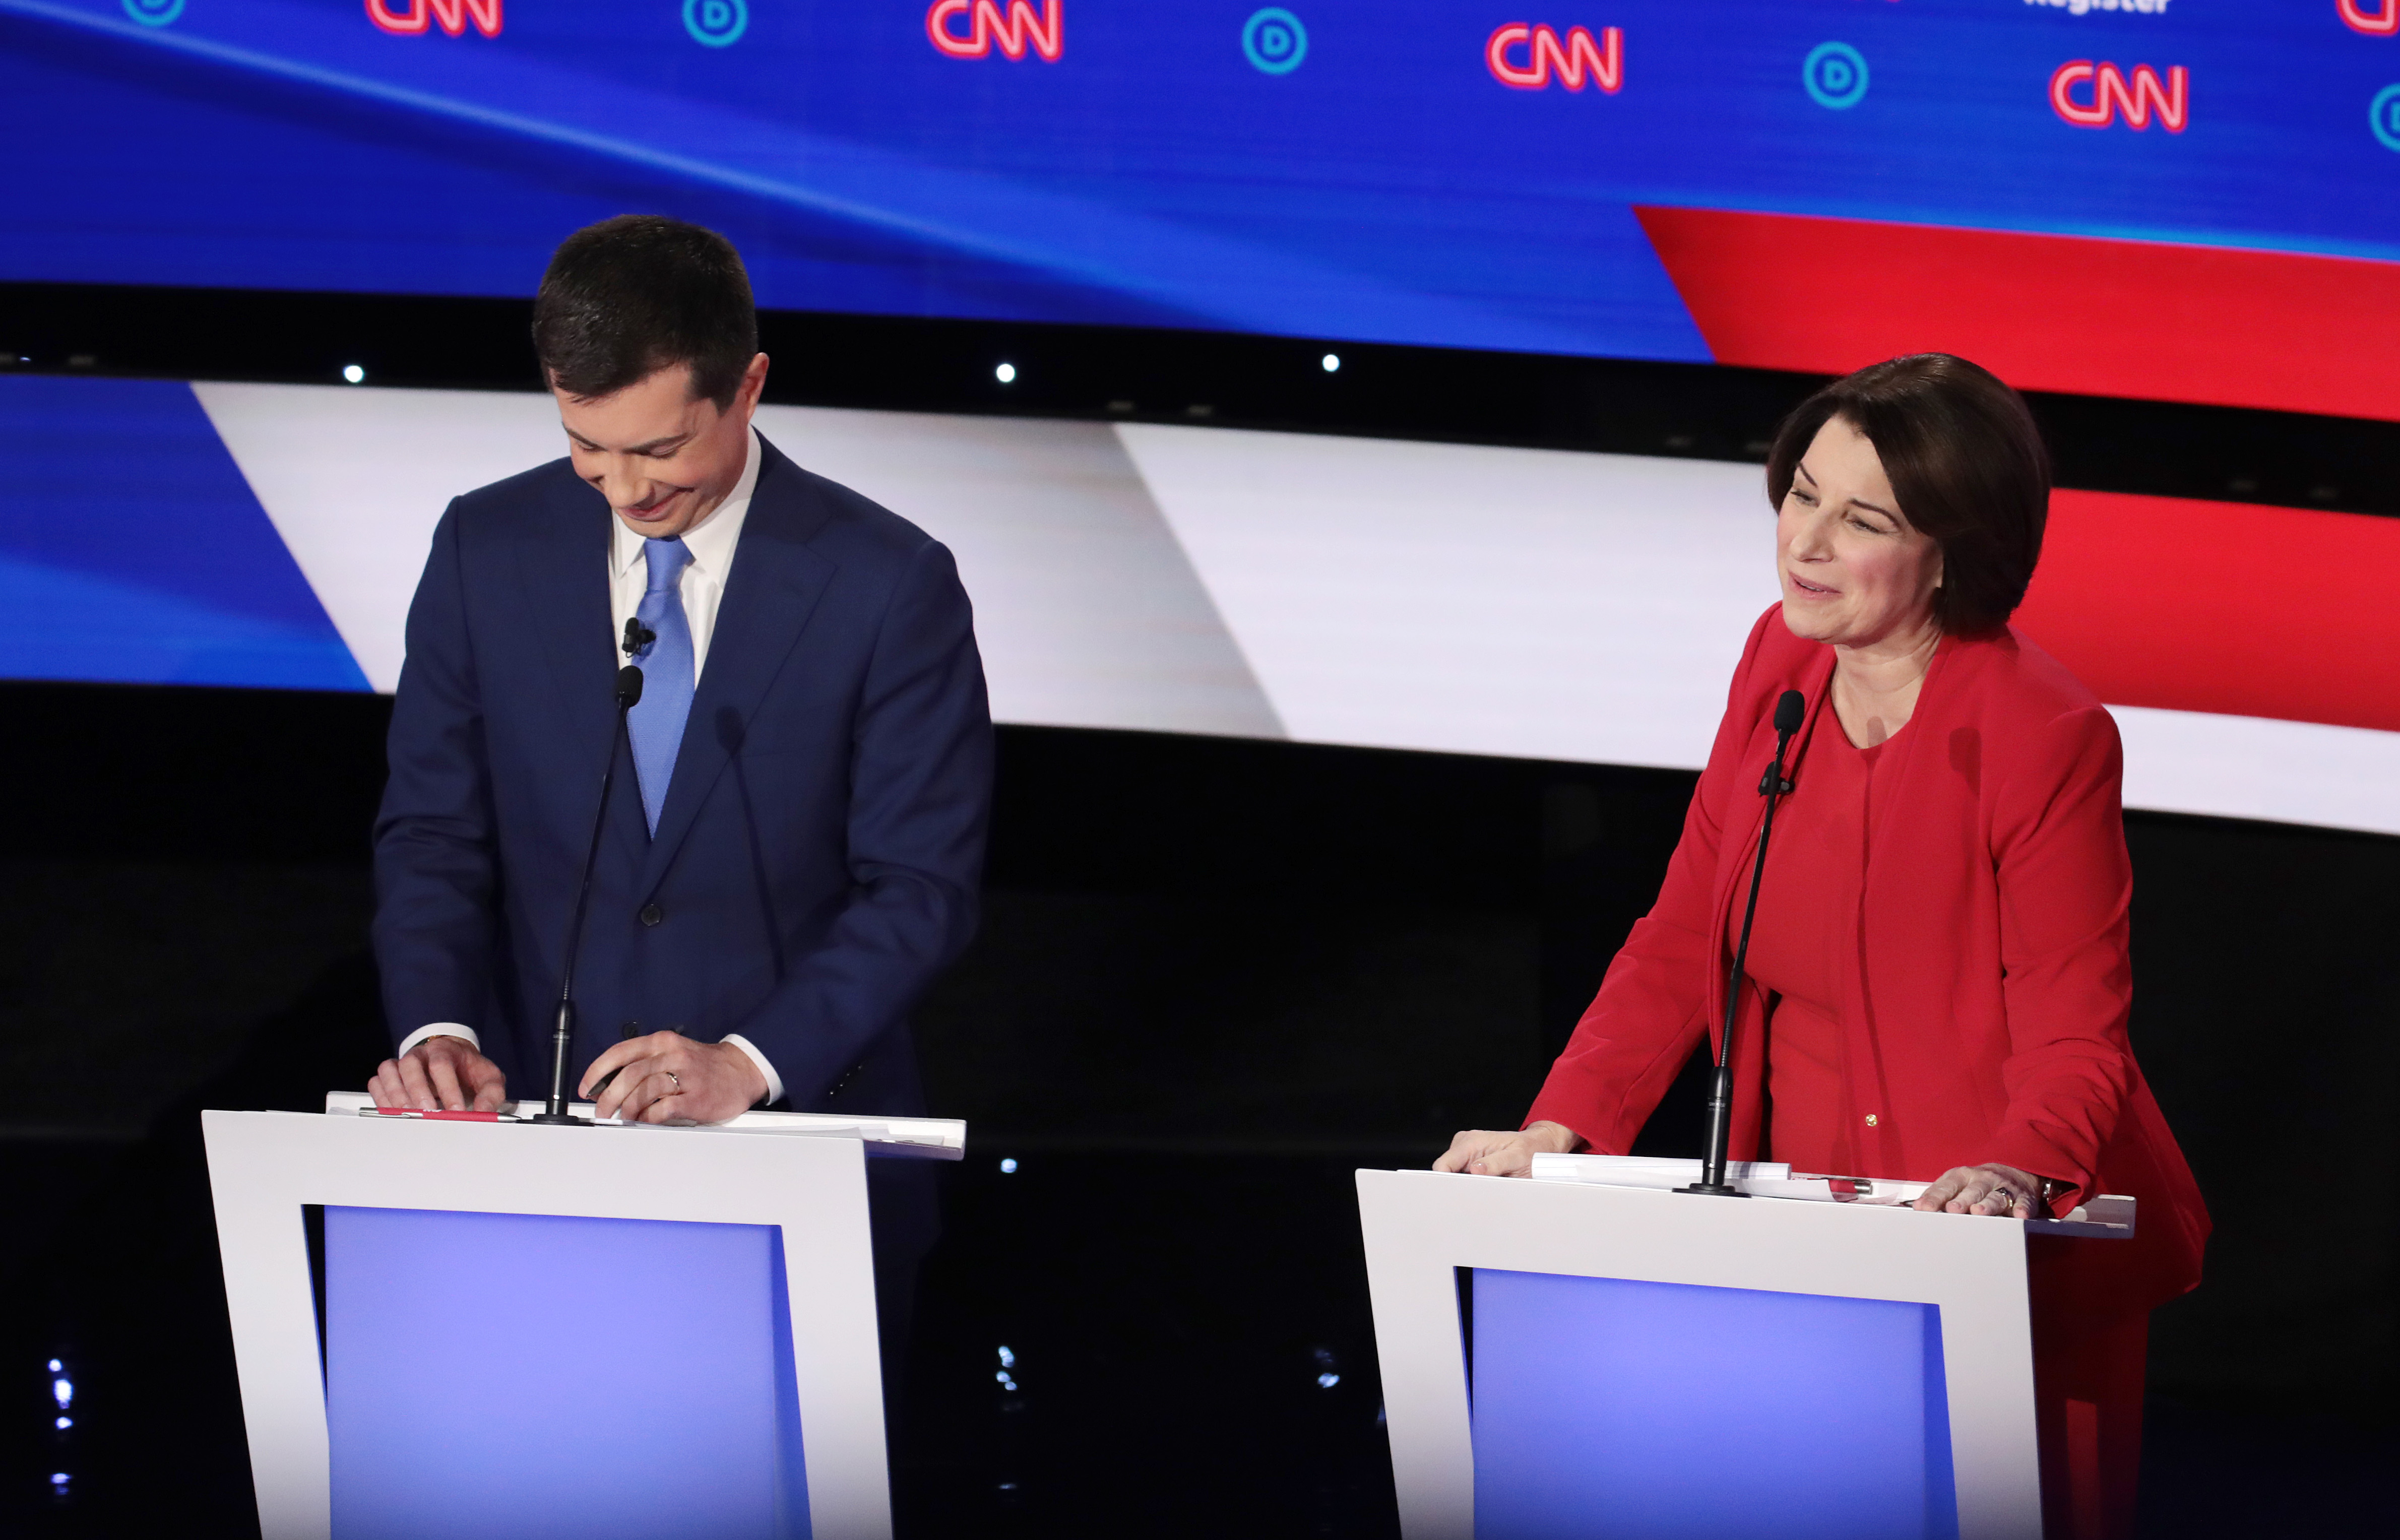 5 things to watch in tonight's Democratic debate